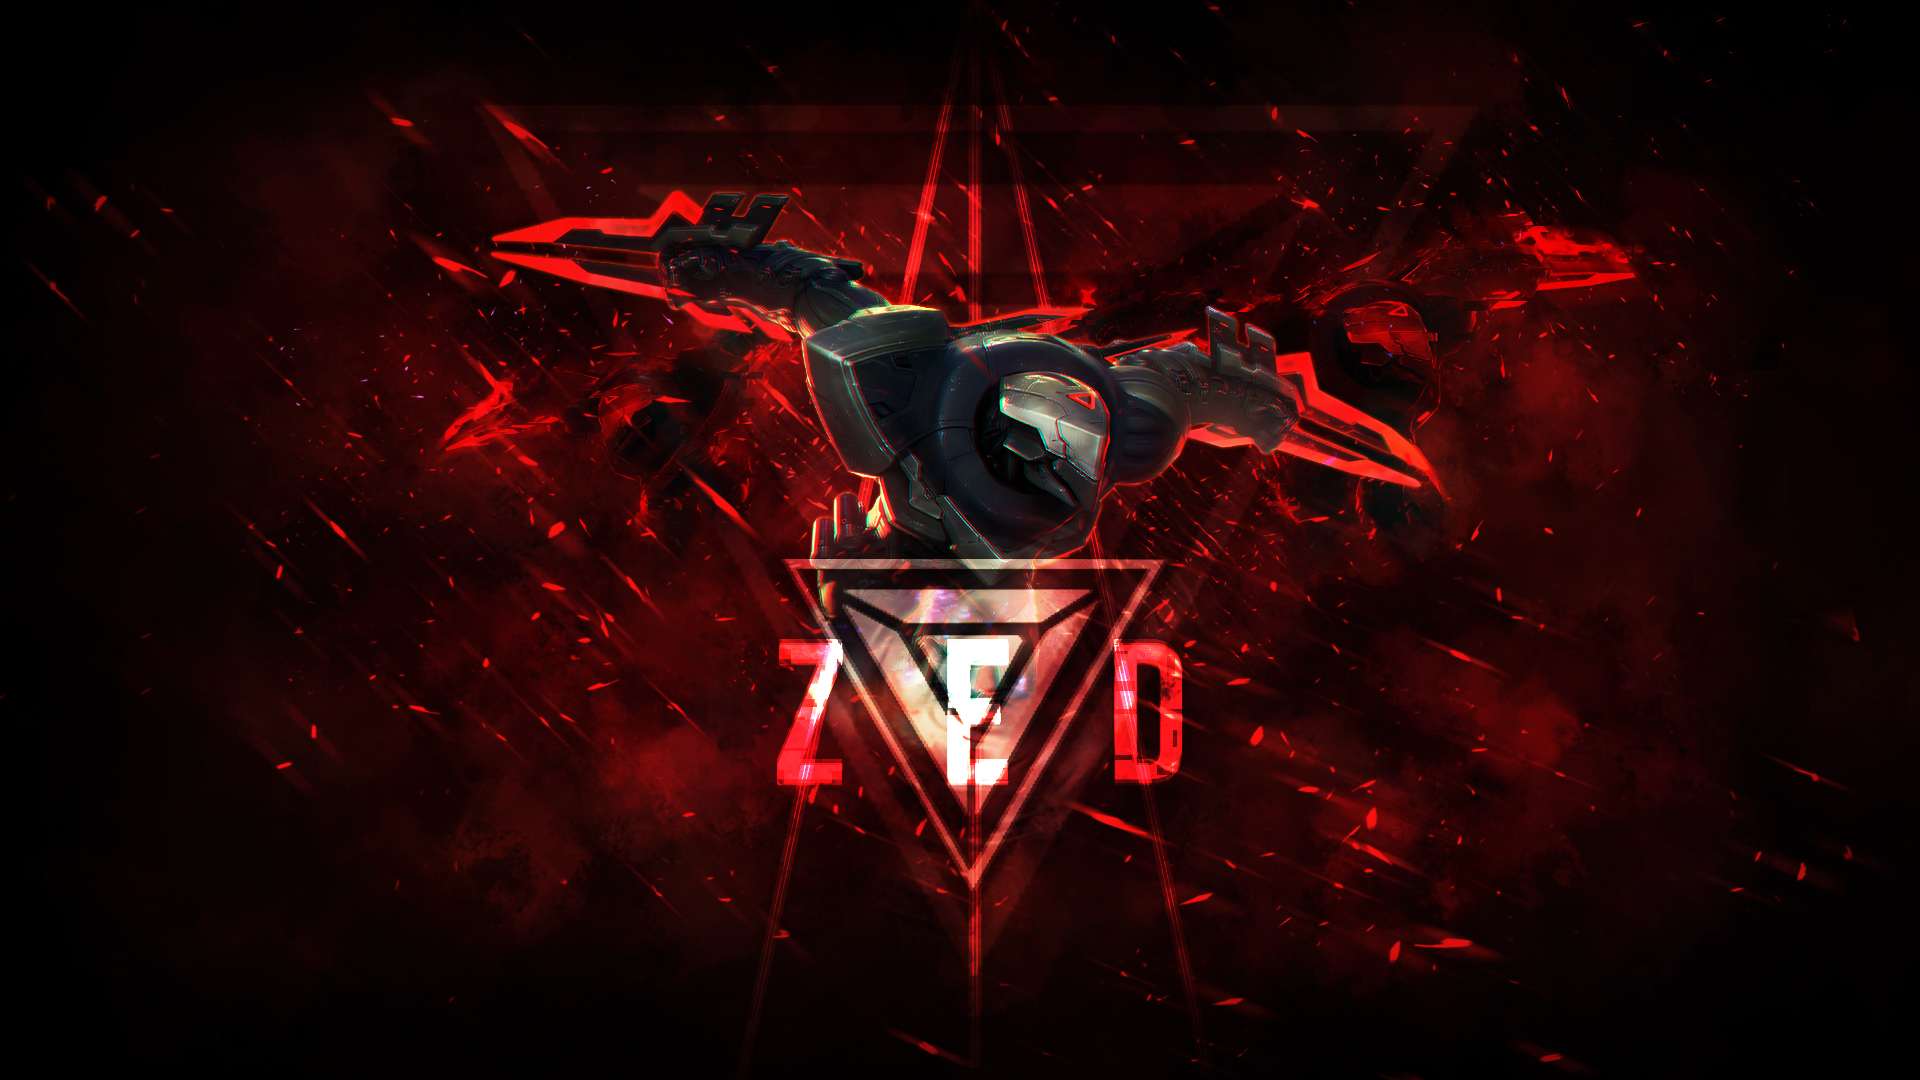 Project Zed Wallpaper By XXDeviousPixelXx